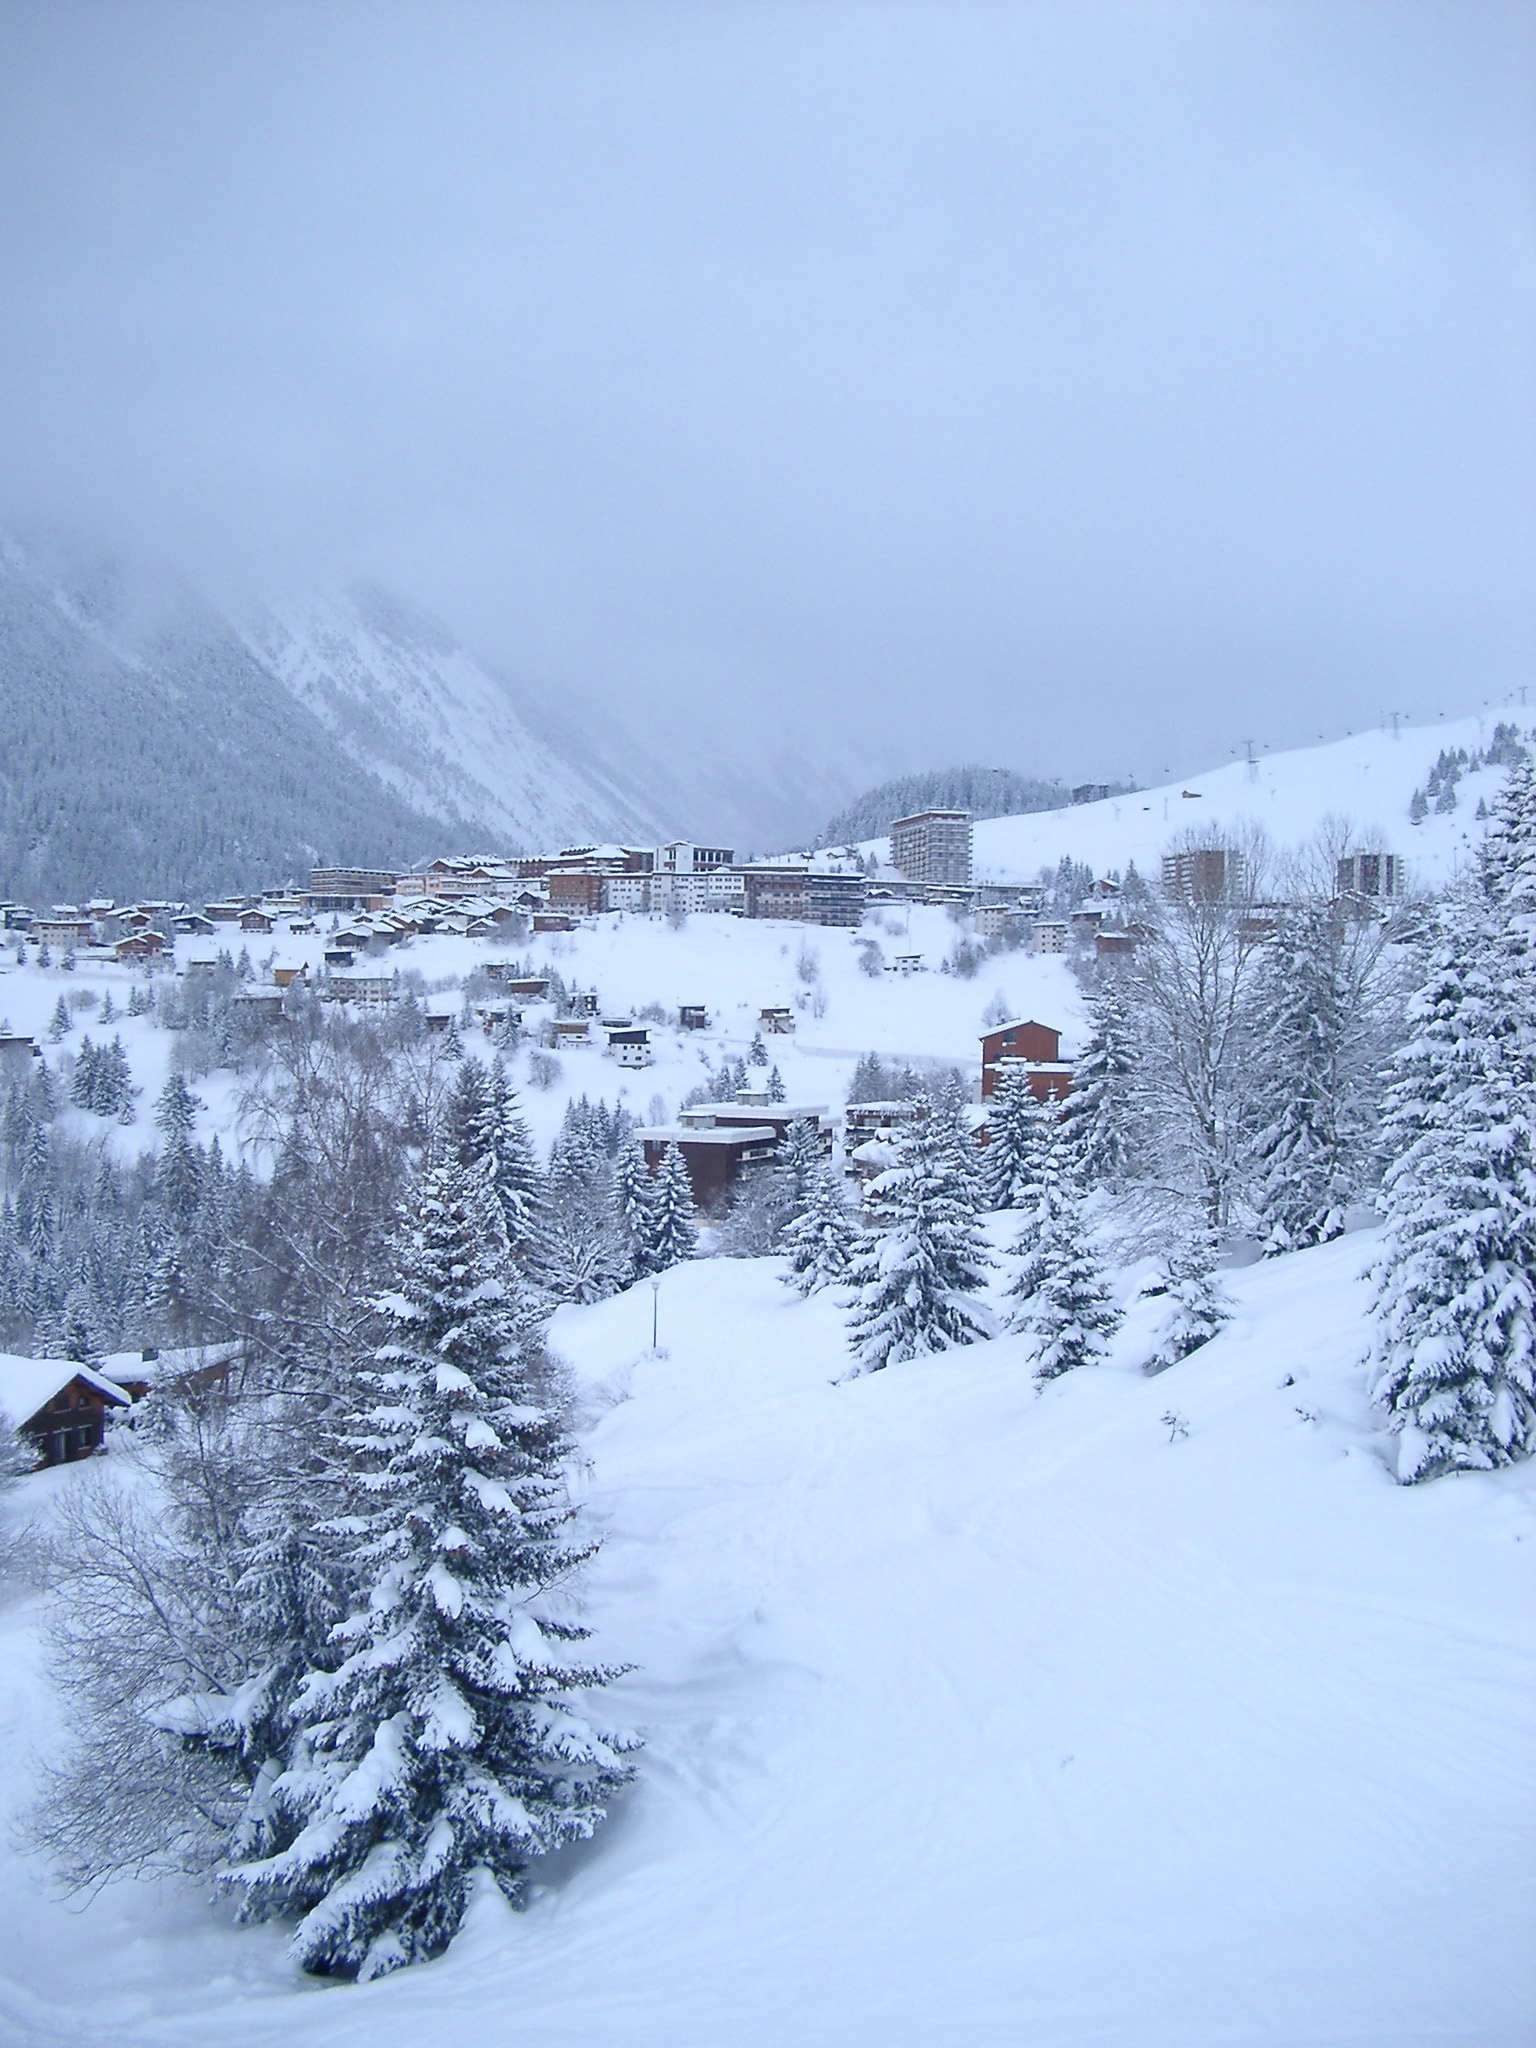 Scenic winter landscape with snow covered fir trees and an alpine village in a high mountain valley